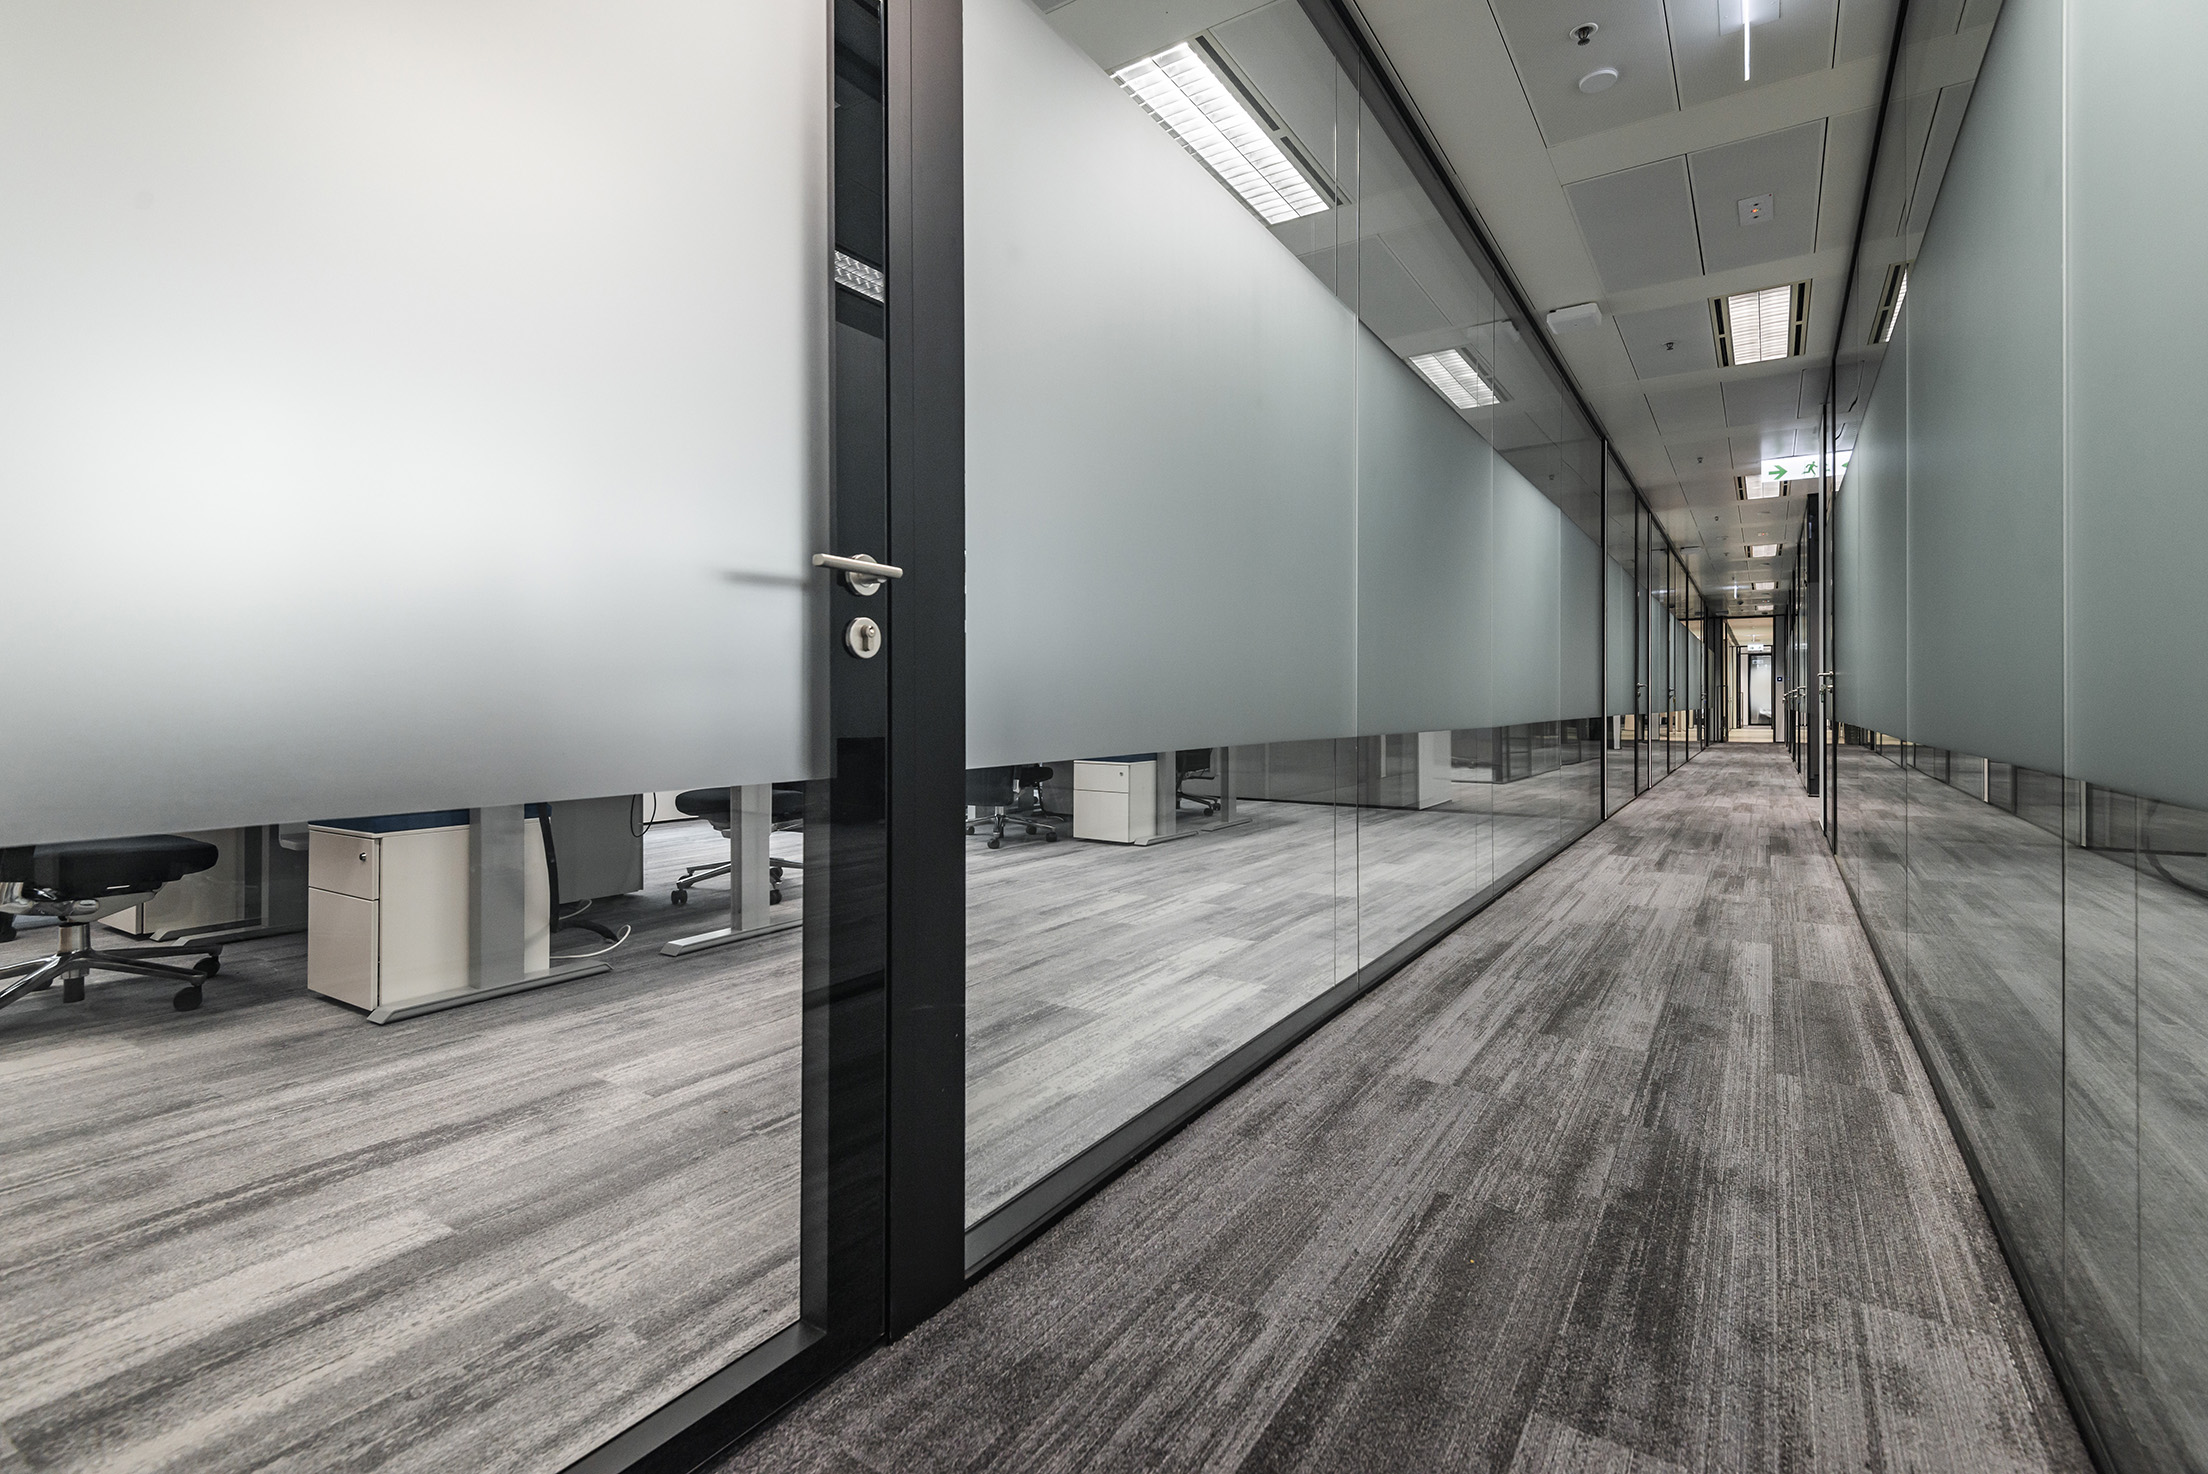 jeb-partitions-x-series-office-hk-11.jpg